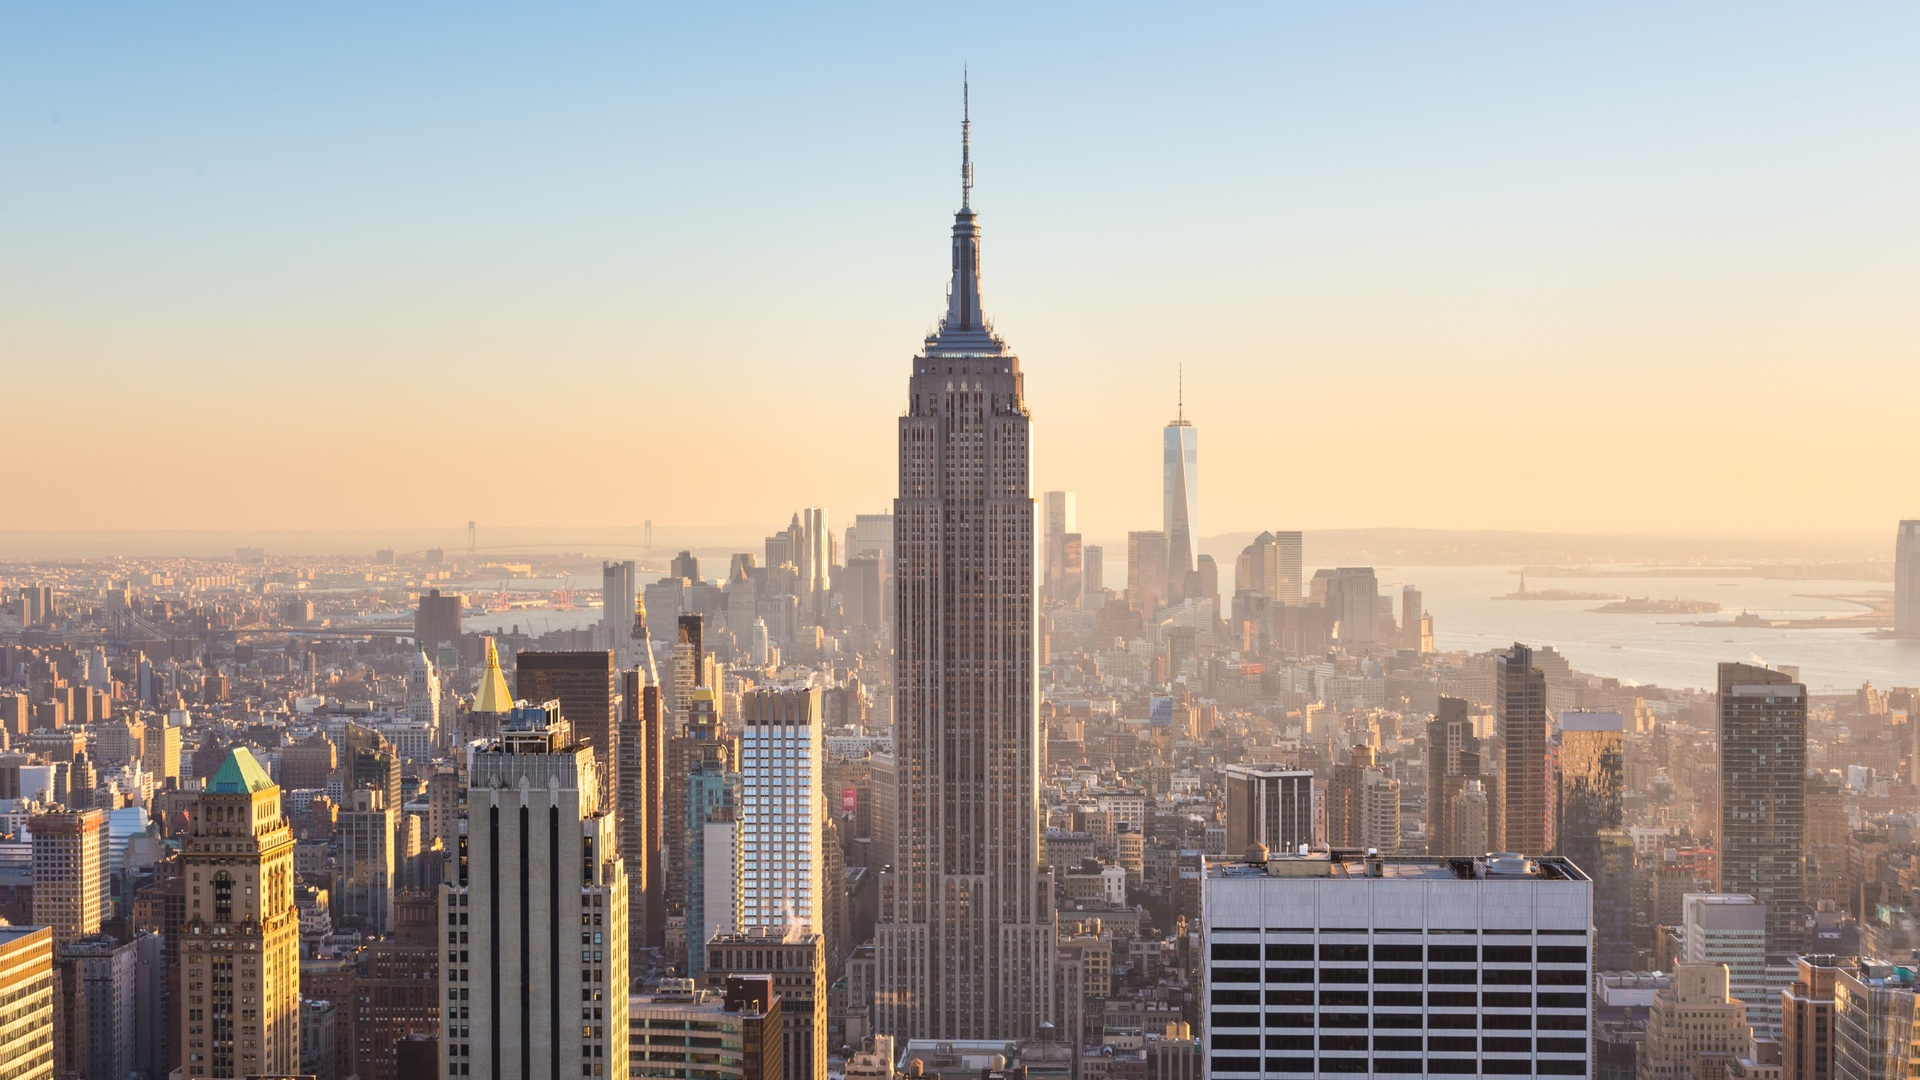 building hd wallpapers 1080p: 1920x1080 New York City Buildings At Day Sunlight Laptop